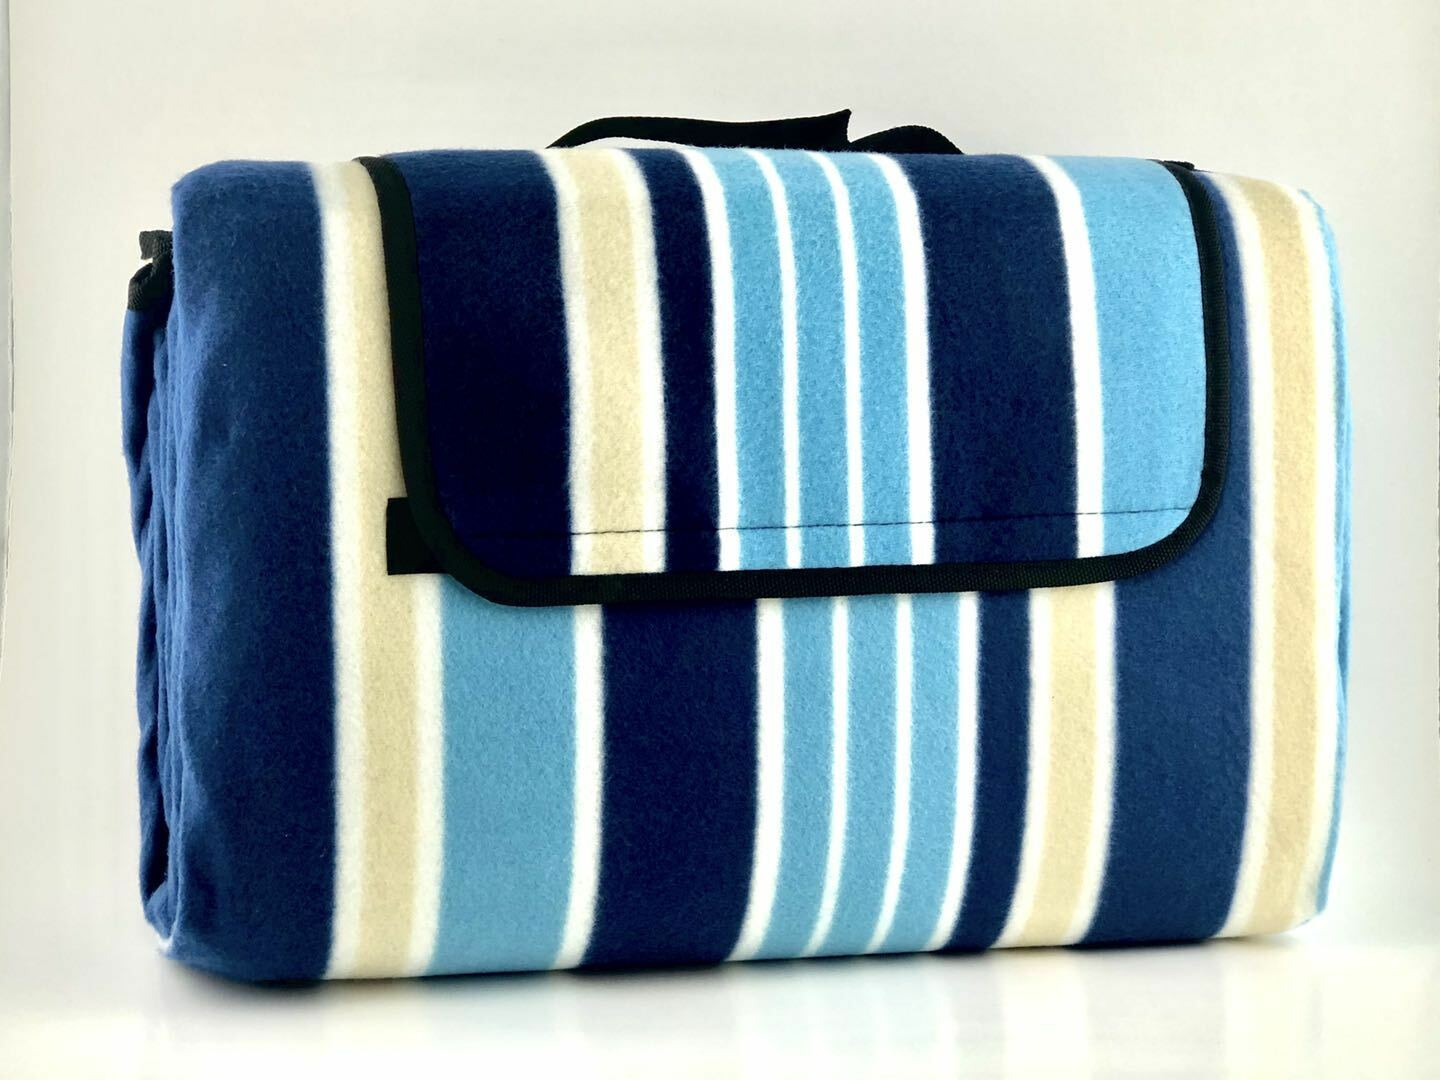 Waterproof Picnic Blanket Large Outdoor Beach Mat Tote